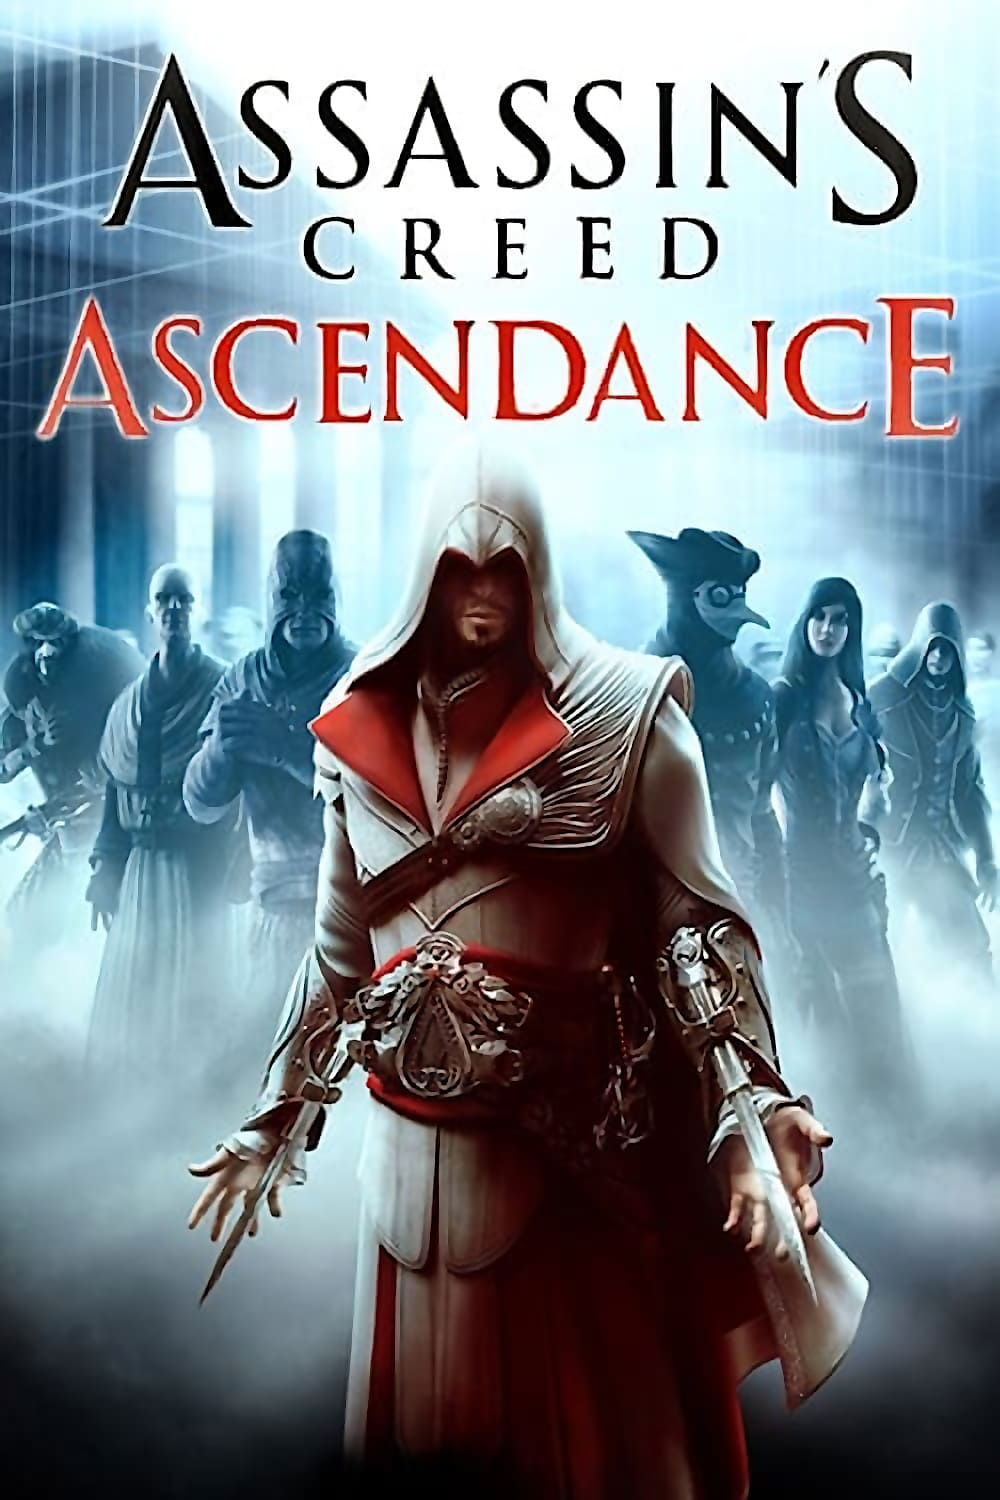 Assassin's Creed: Ascendance (2010)